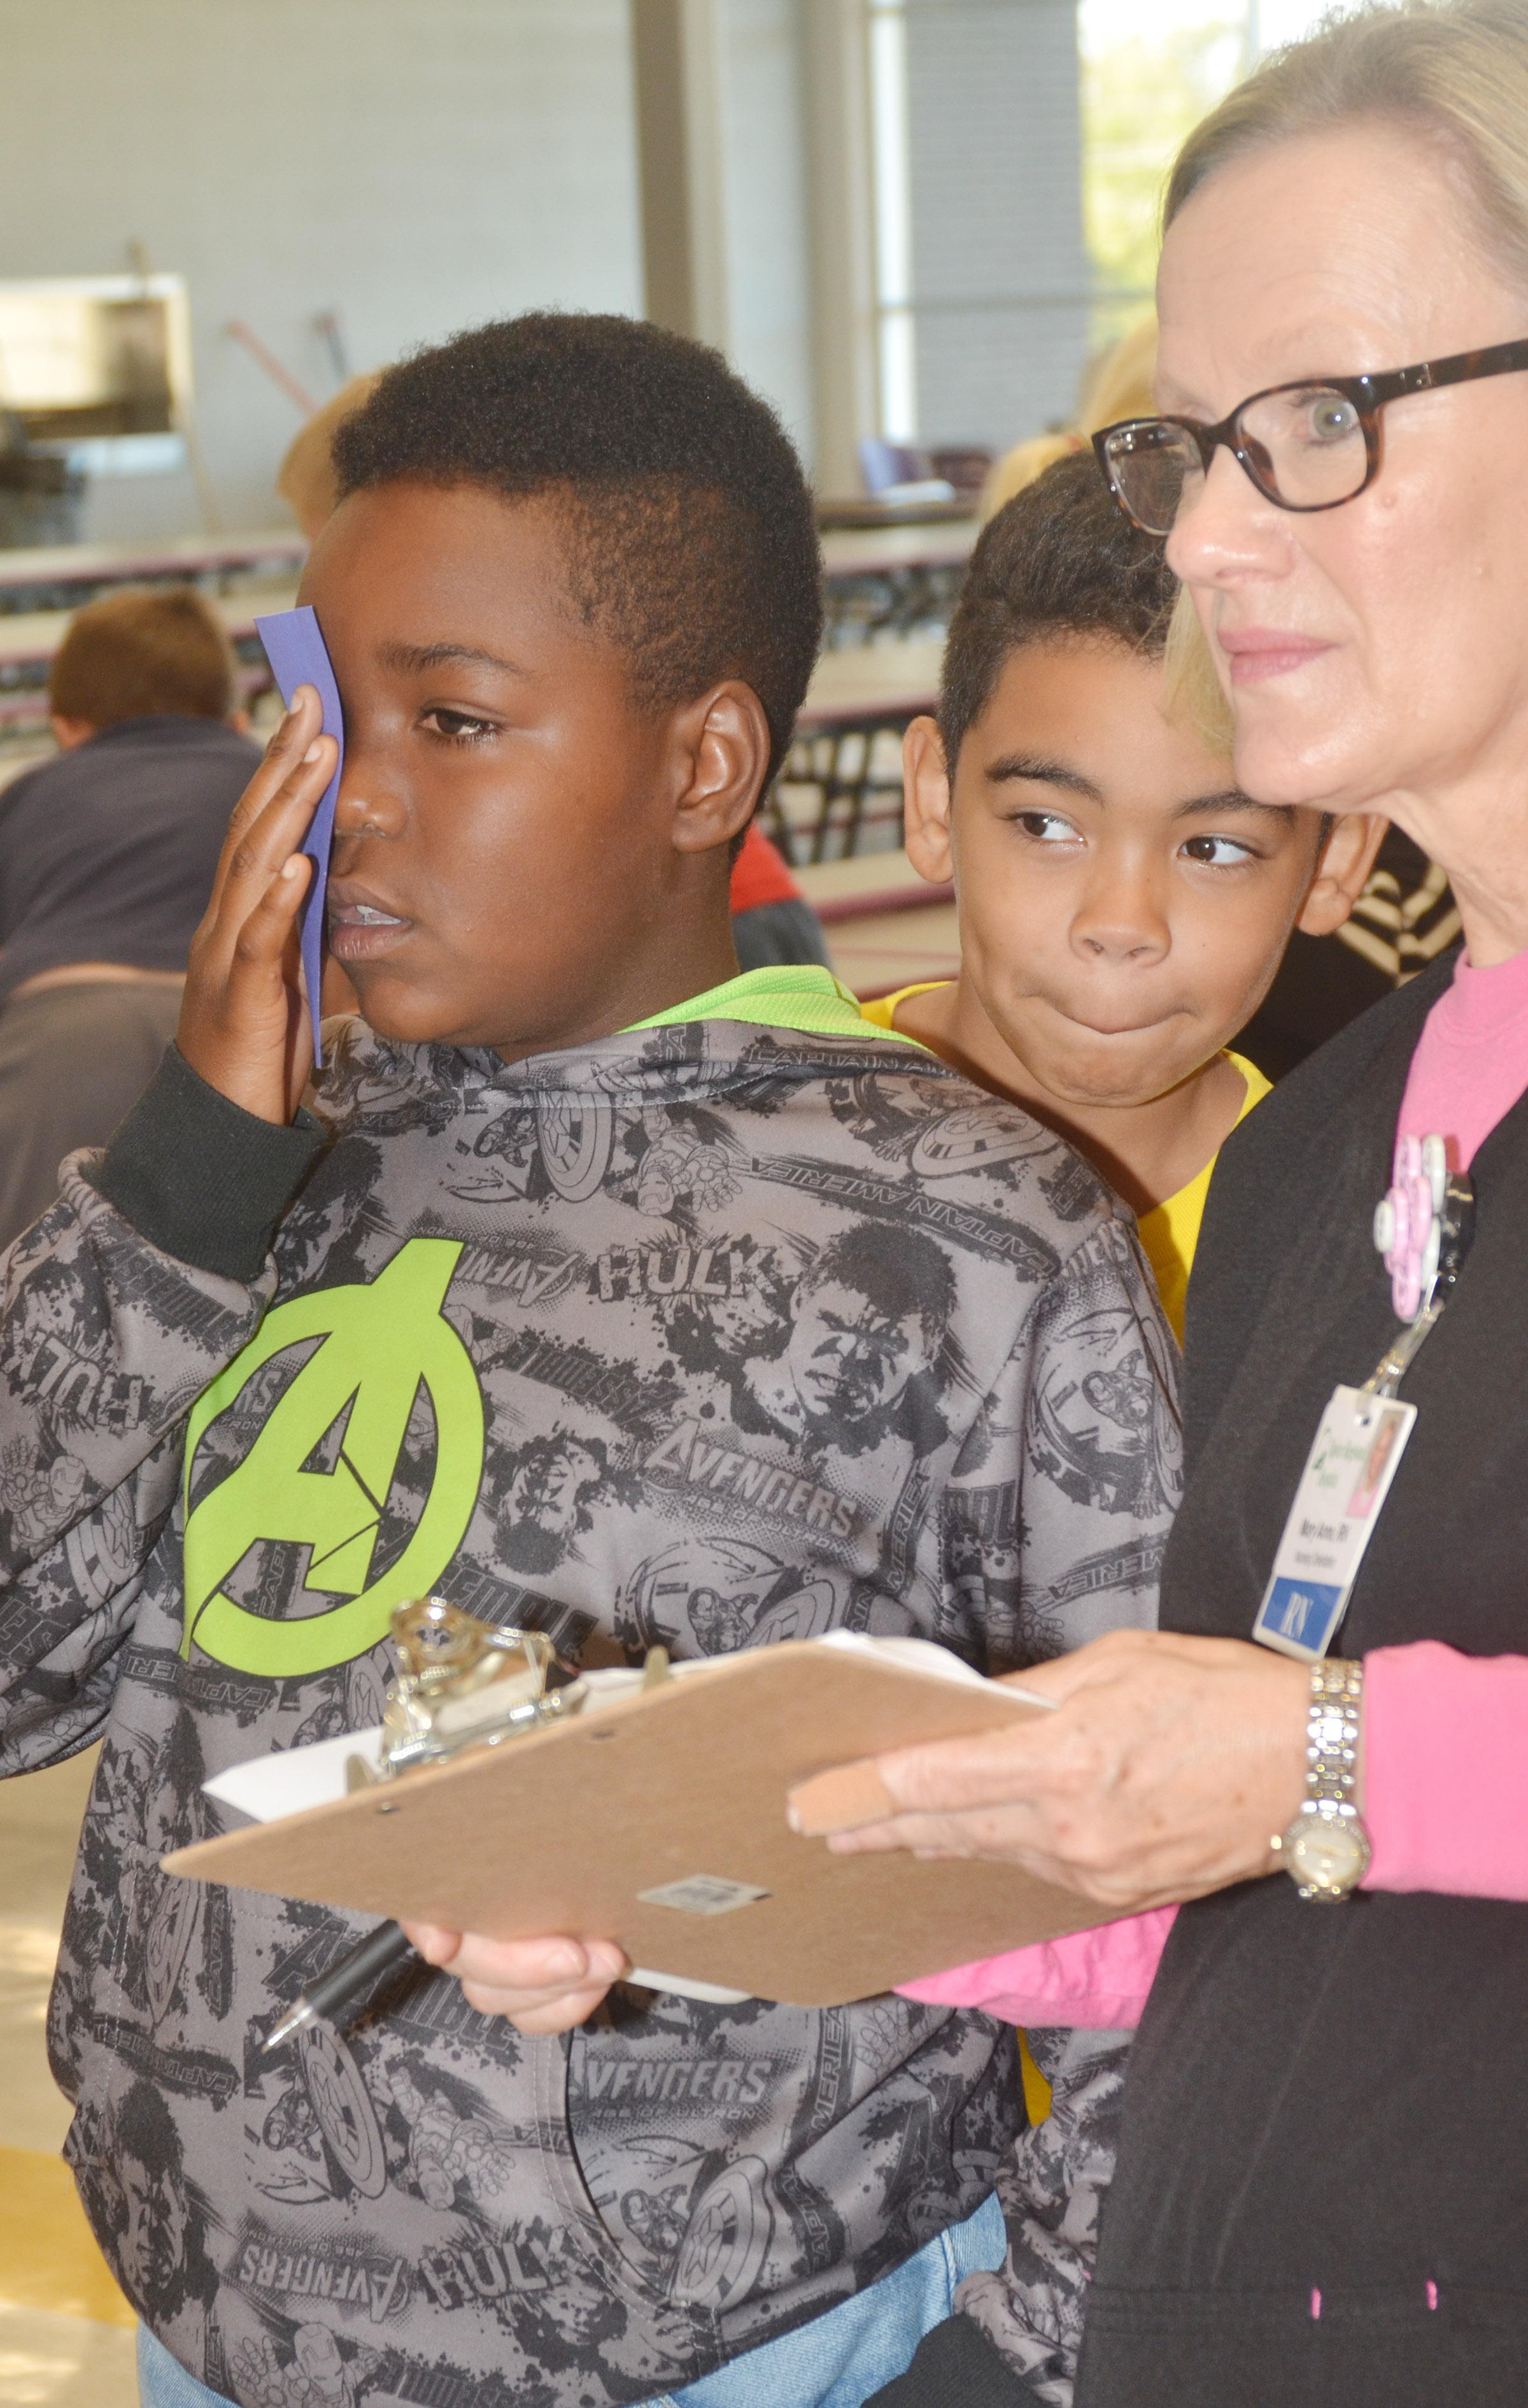 CES fifth-grader Deason Smith undergoes an eye exam with Mary Anne Rice, a registered nurse at Taylor Regional Hospital, as fifth-grader Gabriel Noyola waits his turn.